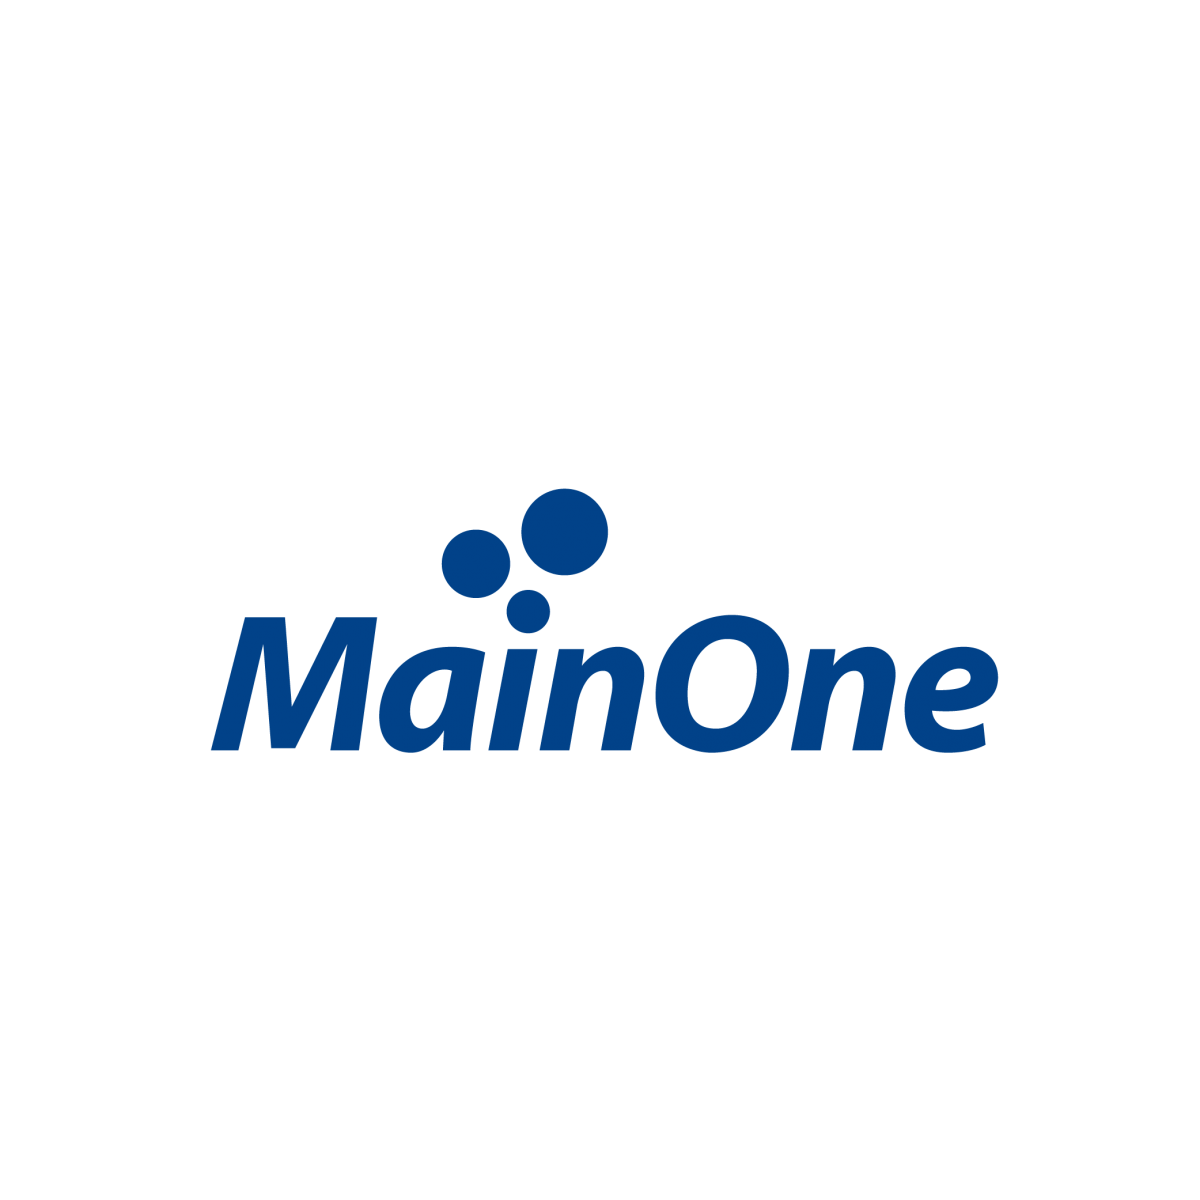 MainOne jobs logo